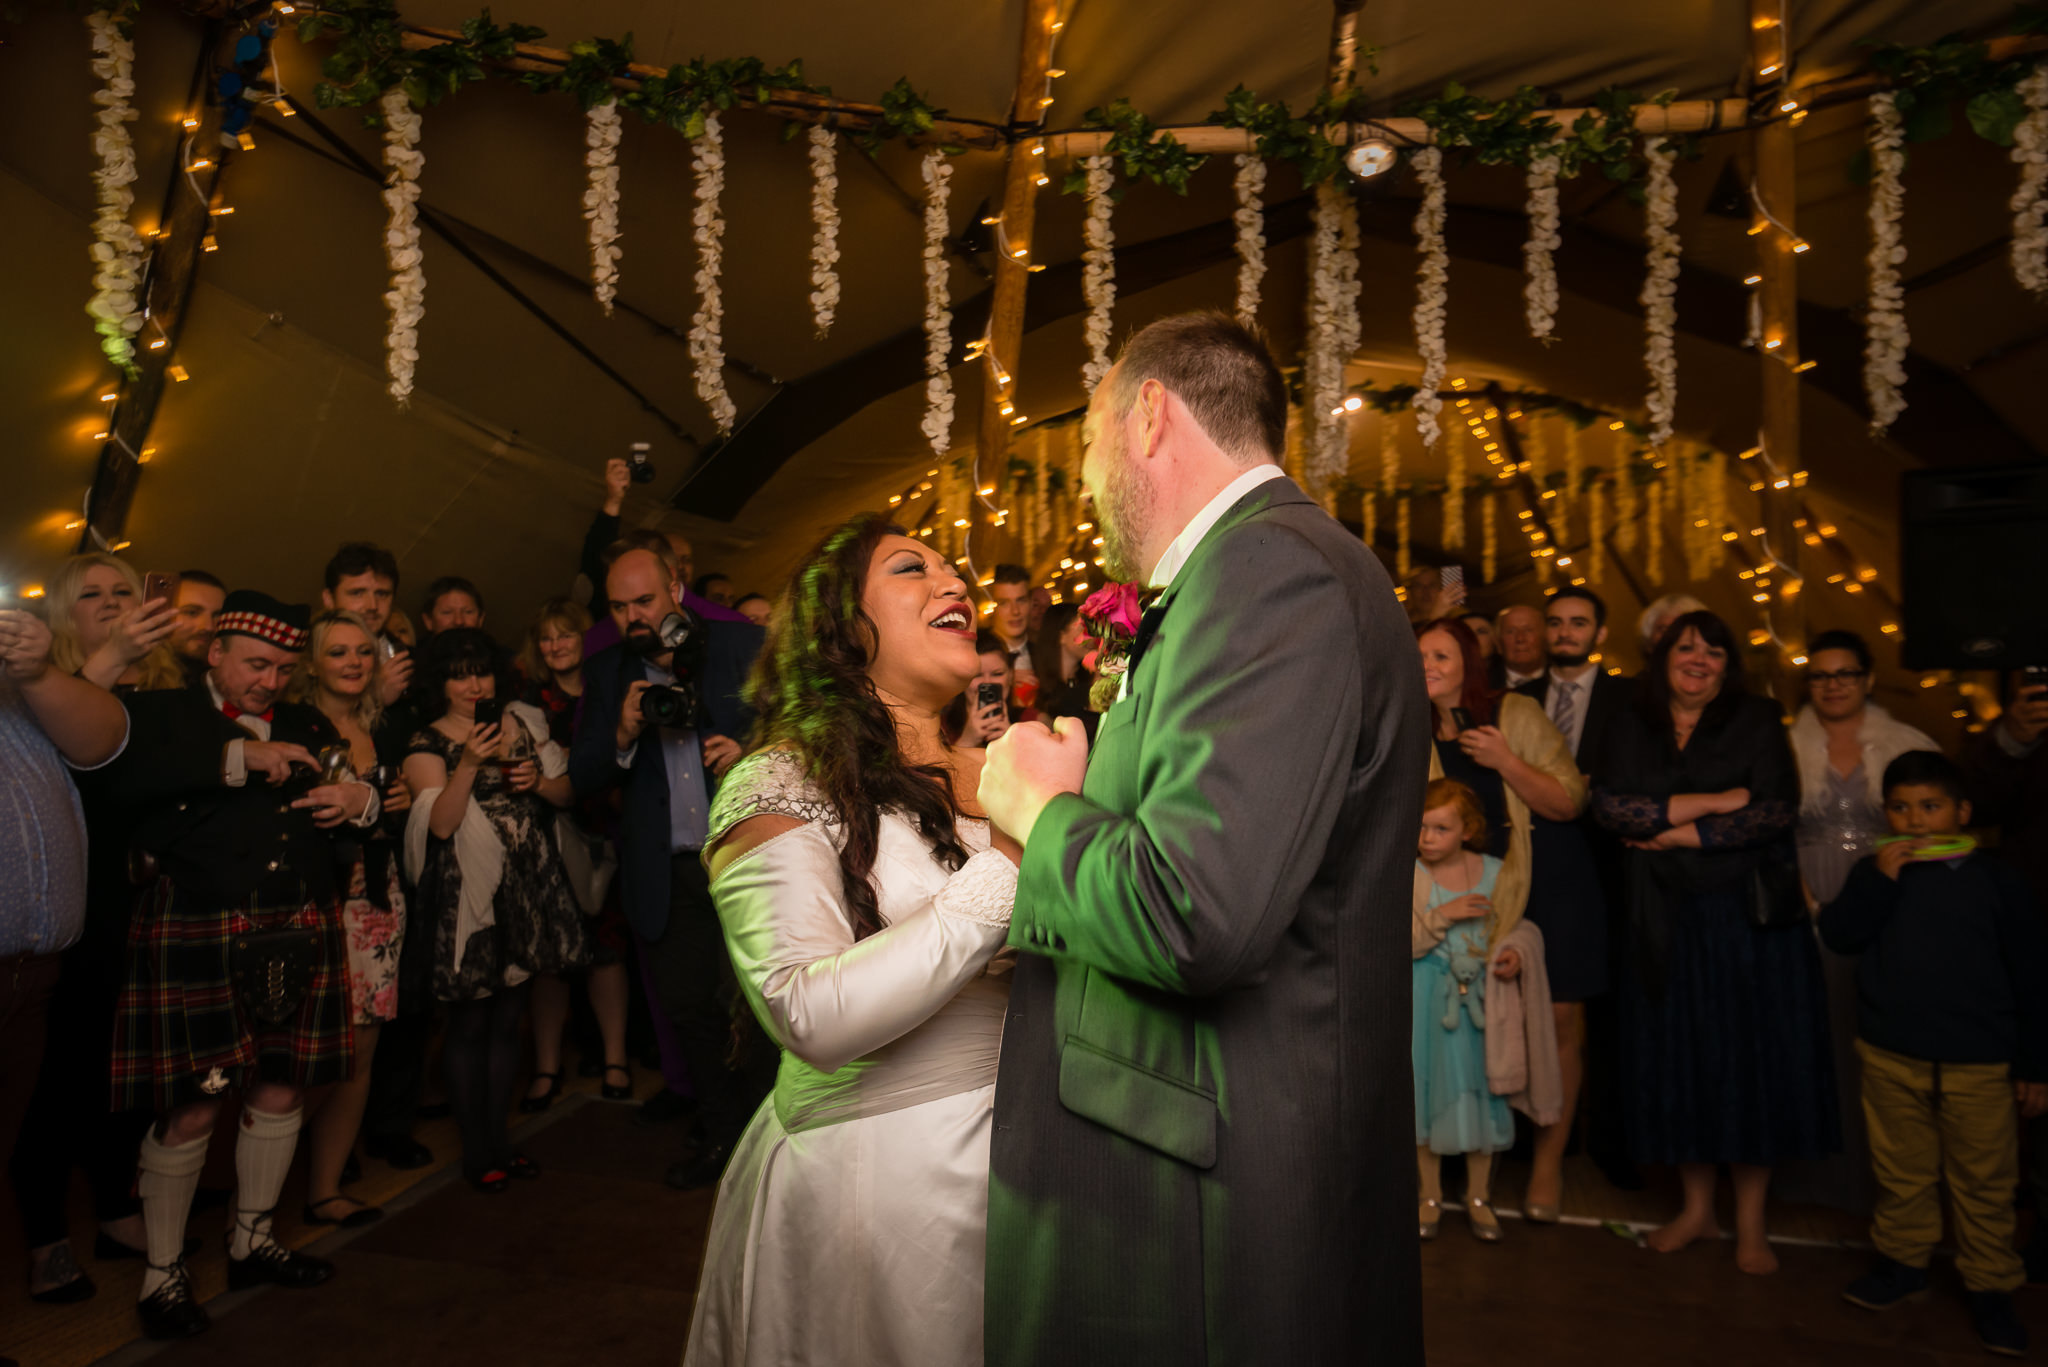 The bride and groom's first dance at their tipi wedding